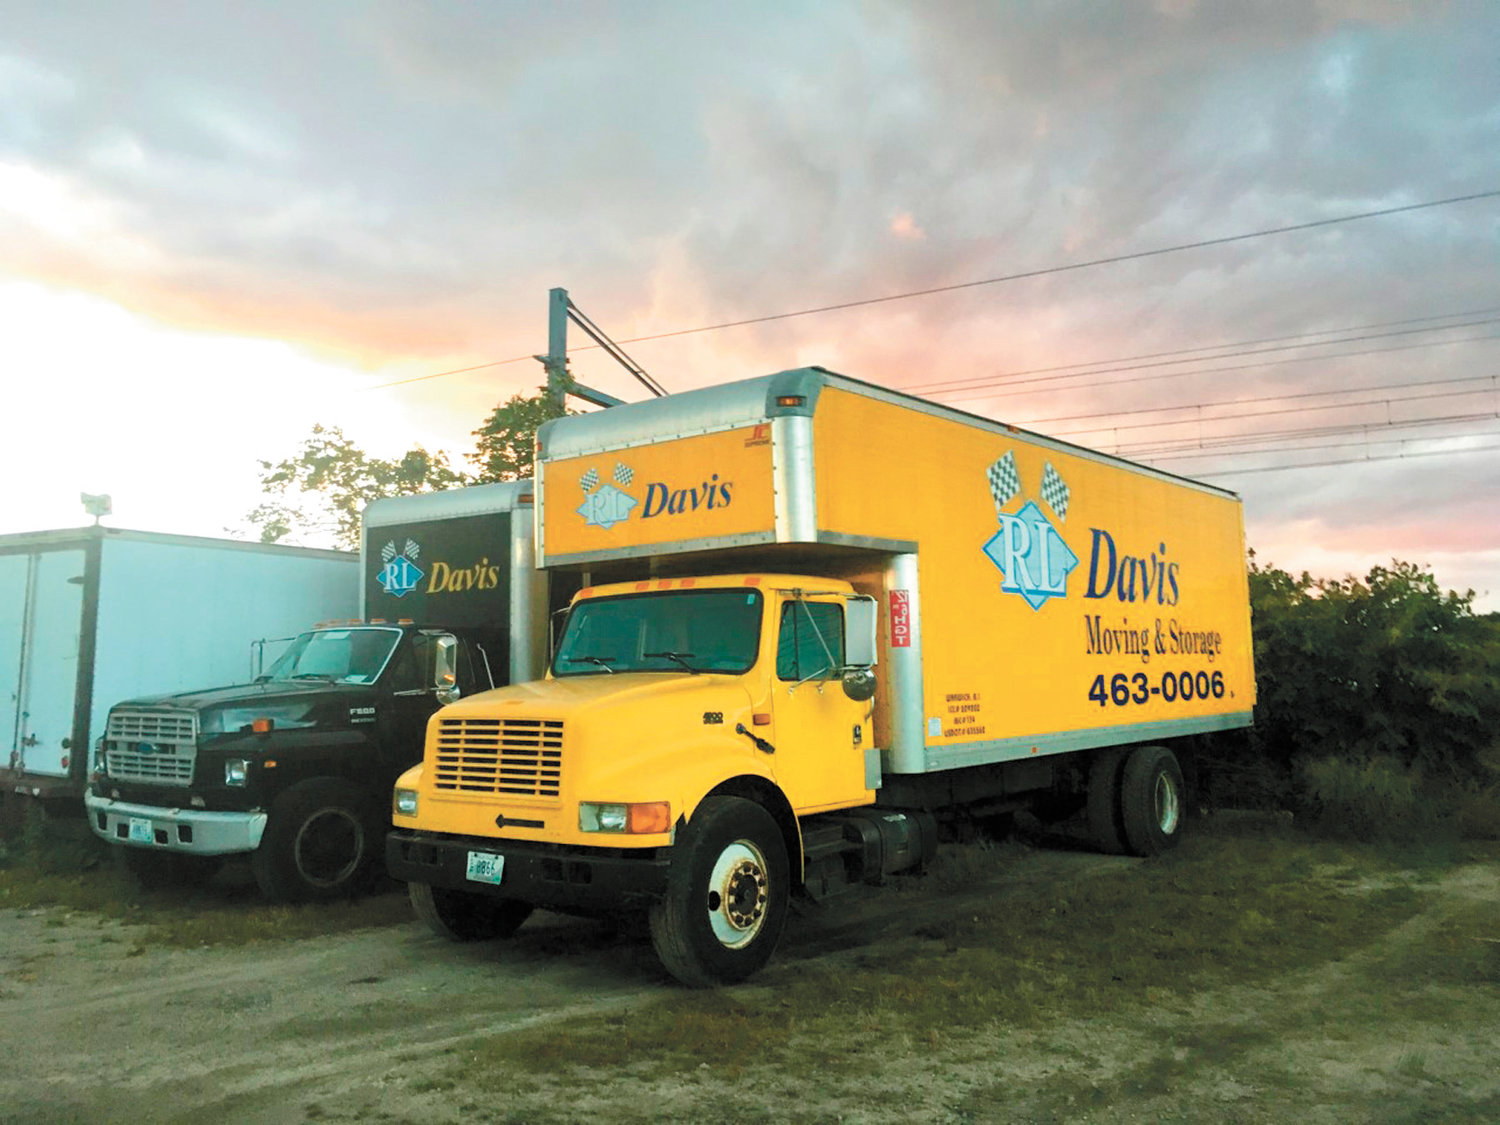 Look for this familiar yellow truck in your neighborhood from the local moving company RL Davis Moving & Storage whose history in New England goes back generations.